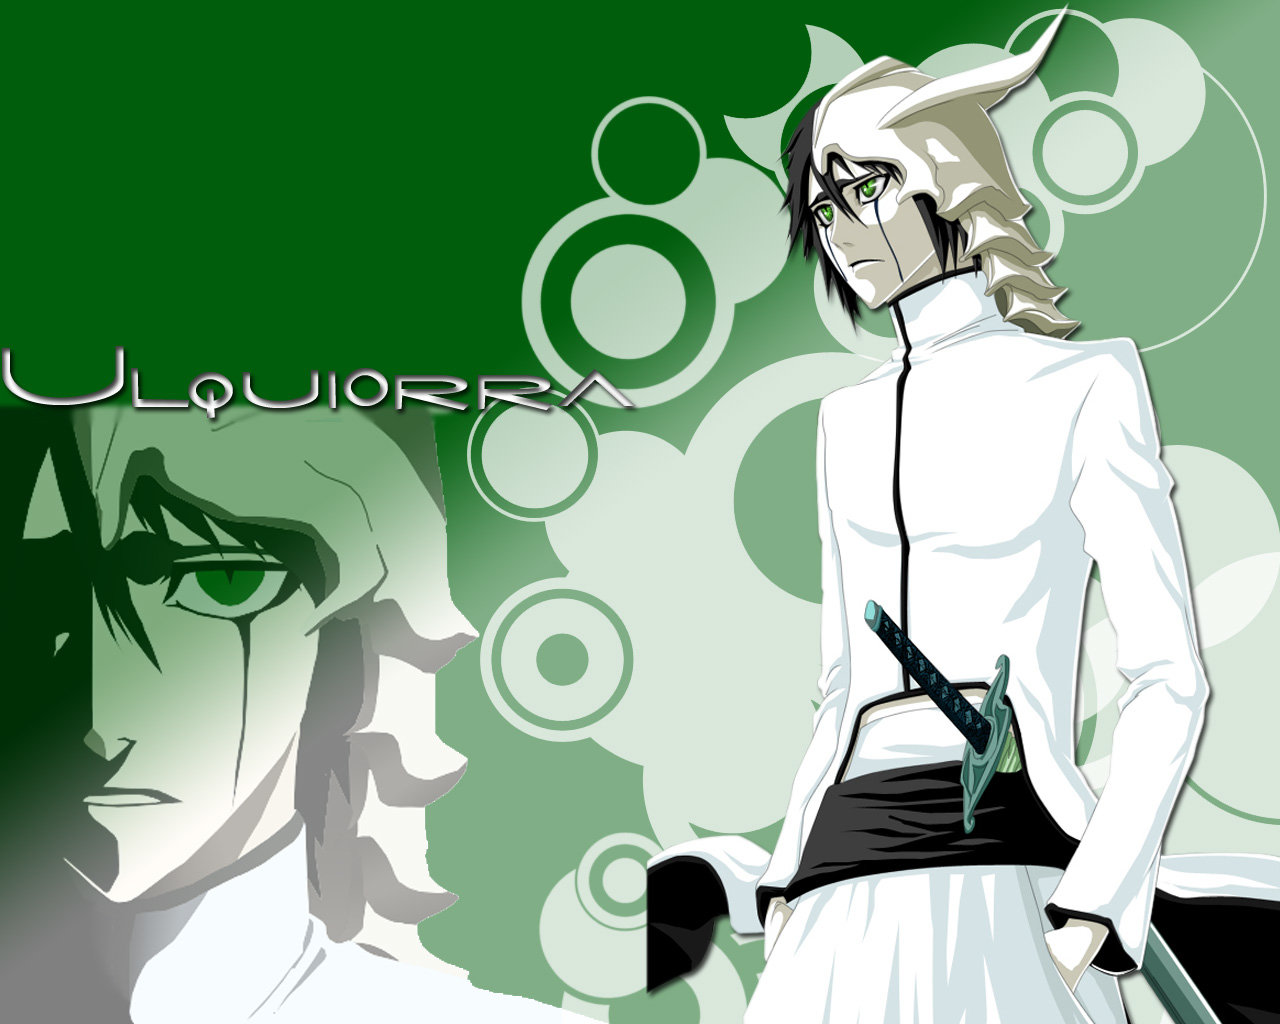 Best Ulquiorra Cifer wallpaper ID:413773 for High Resolution hd 1280x1024 computer